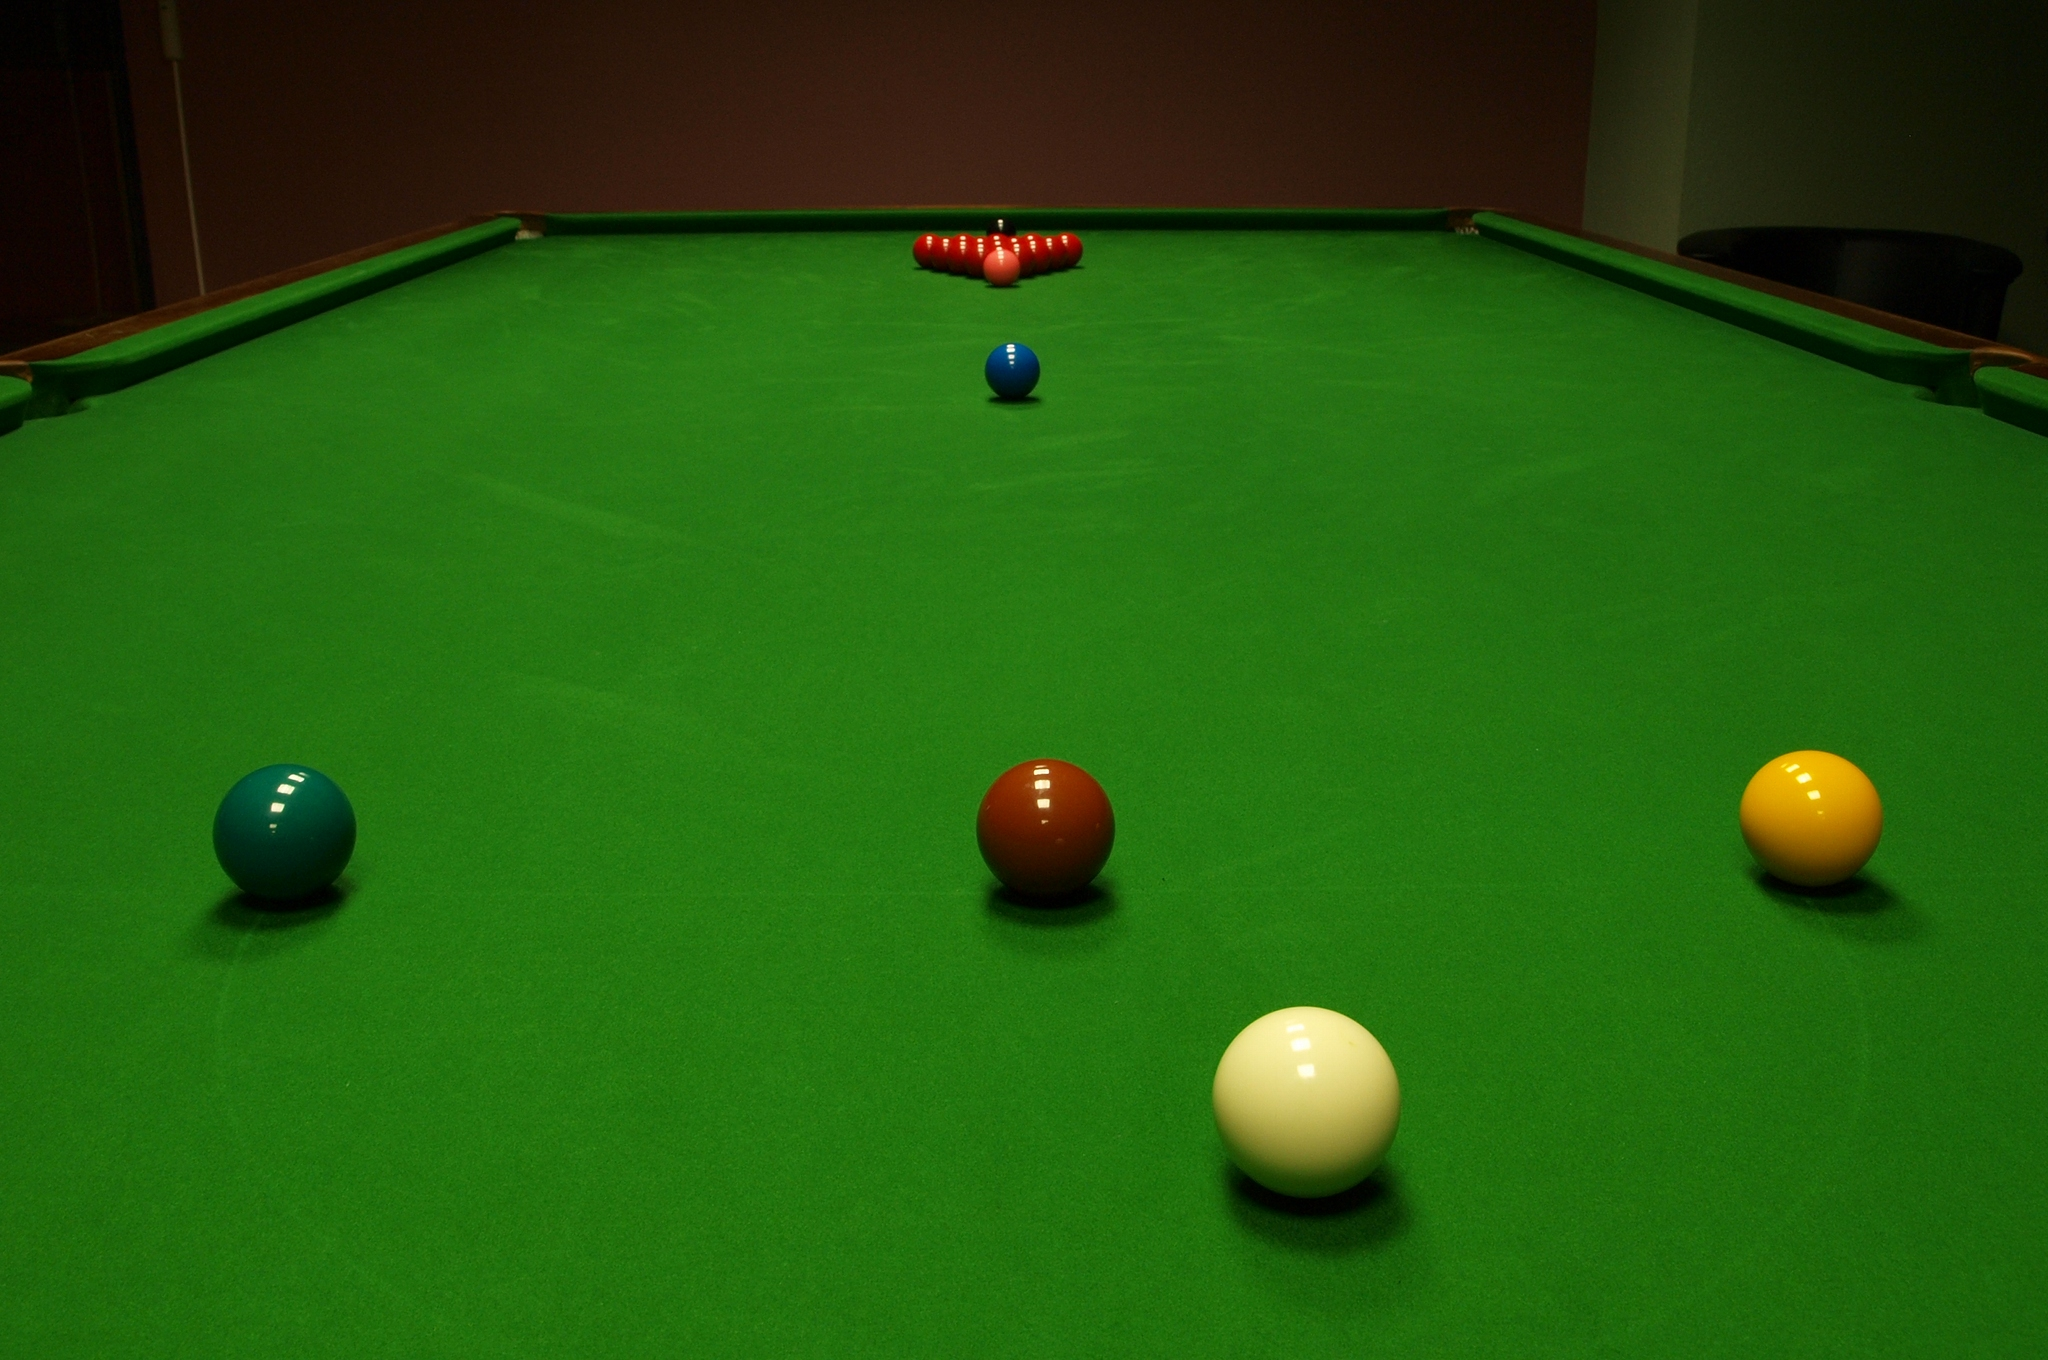 Rules of snooker - Wikiwand